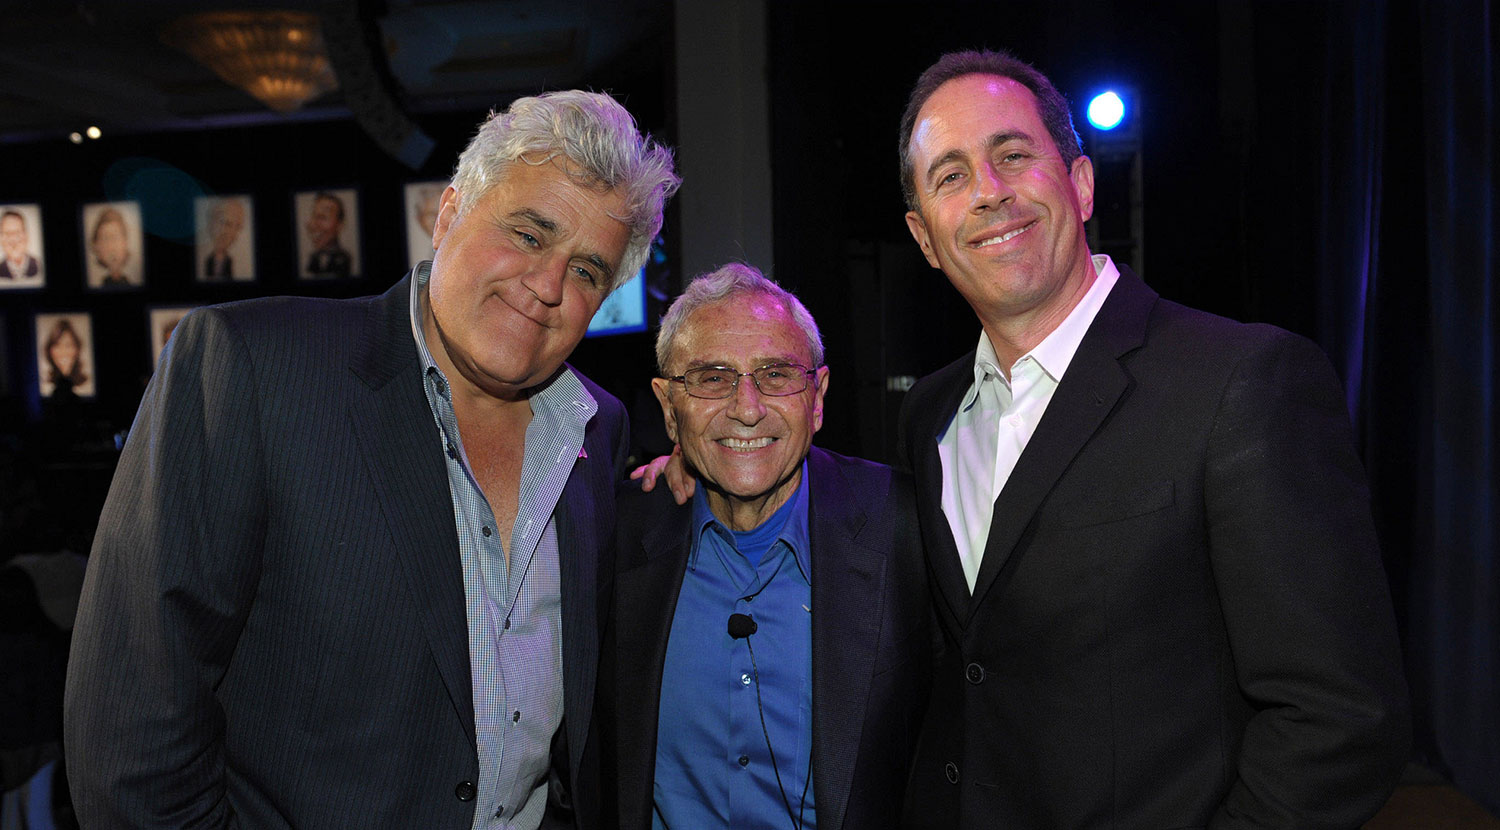 From left: Jay Leno, legendary talent manager George Shapiro, and Jerry Seinfeld